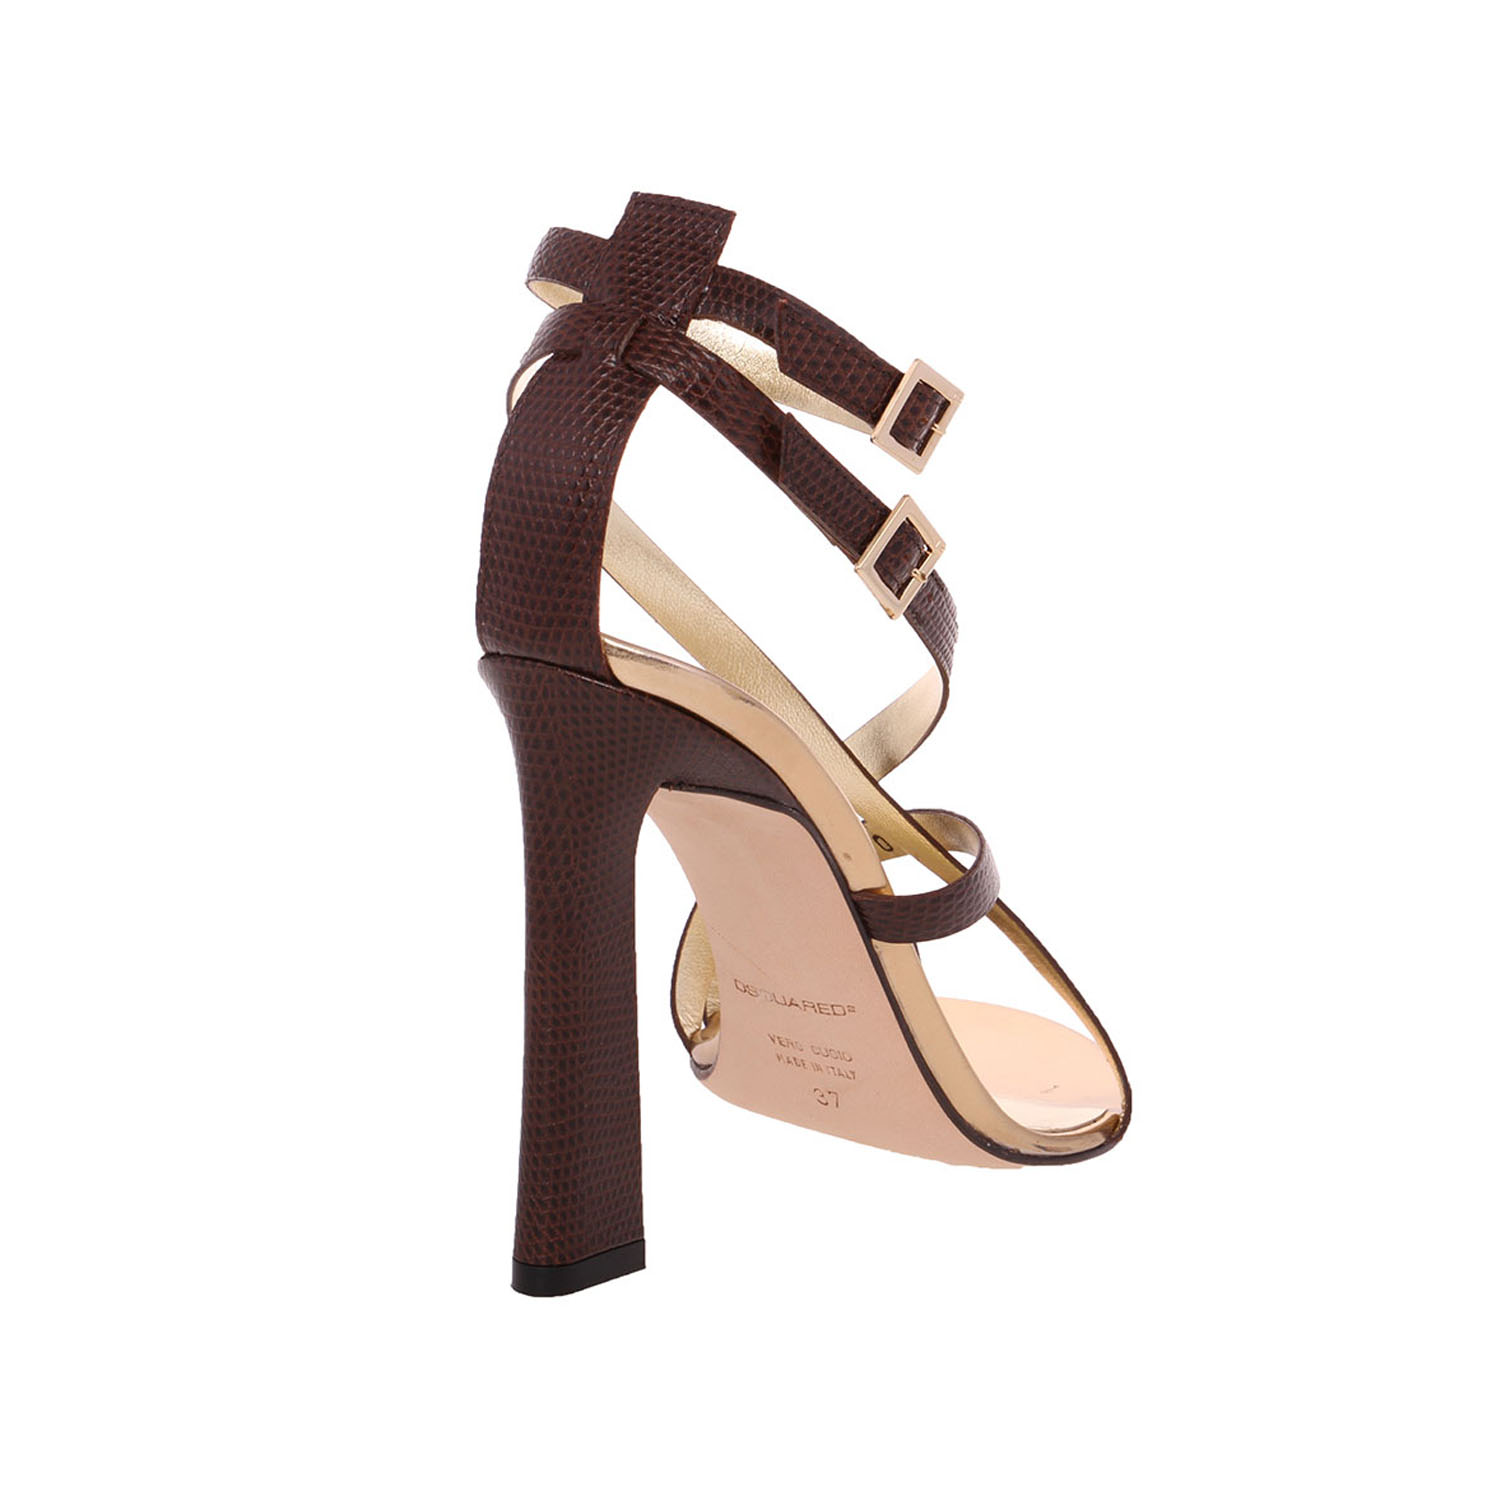 Dsquared2 Women Brown Lizard Embossed Leather Toe Ring High Heel Sandals Shoes US 8 EU 38